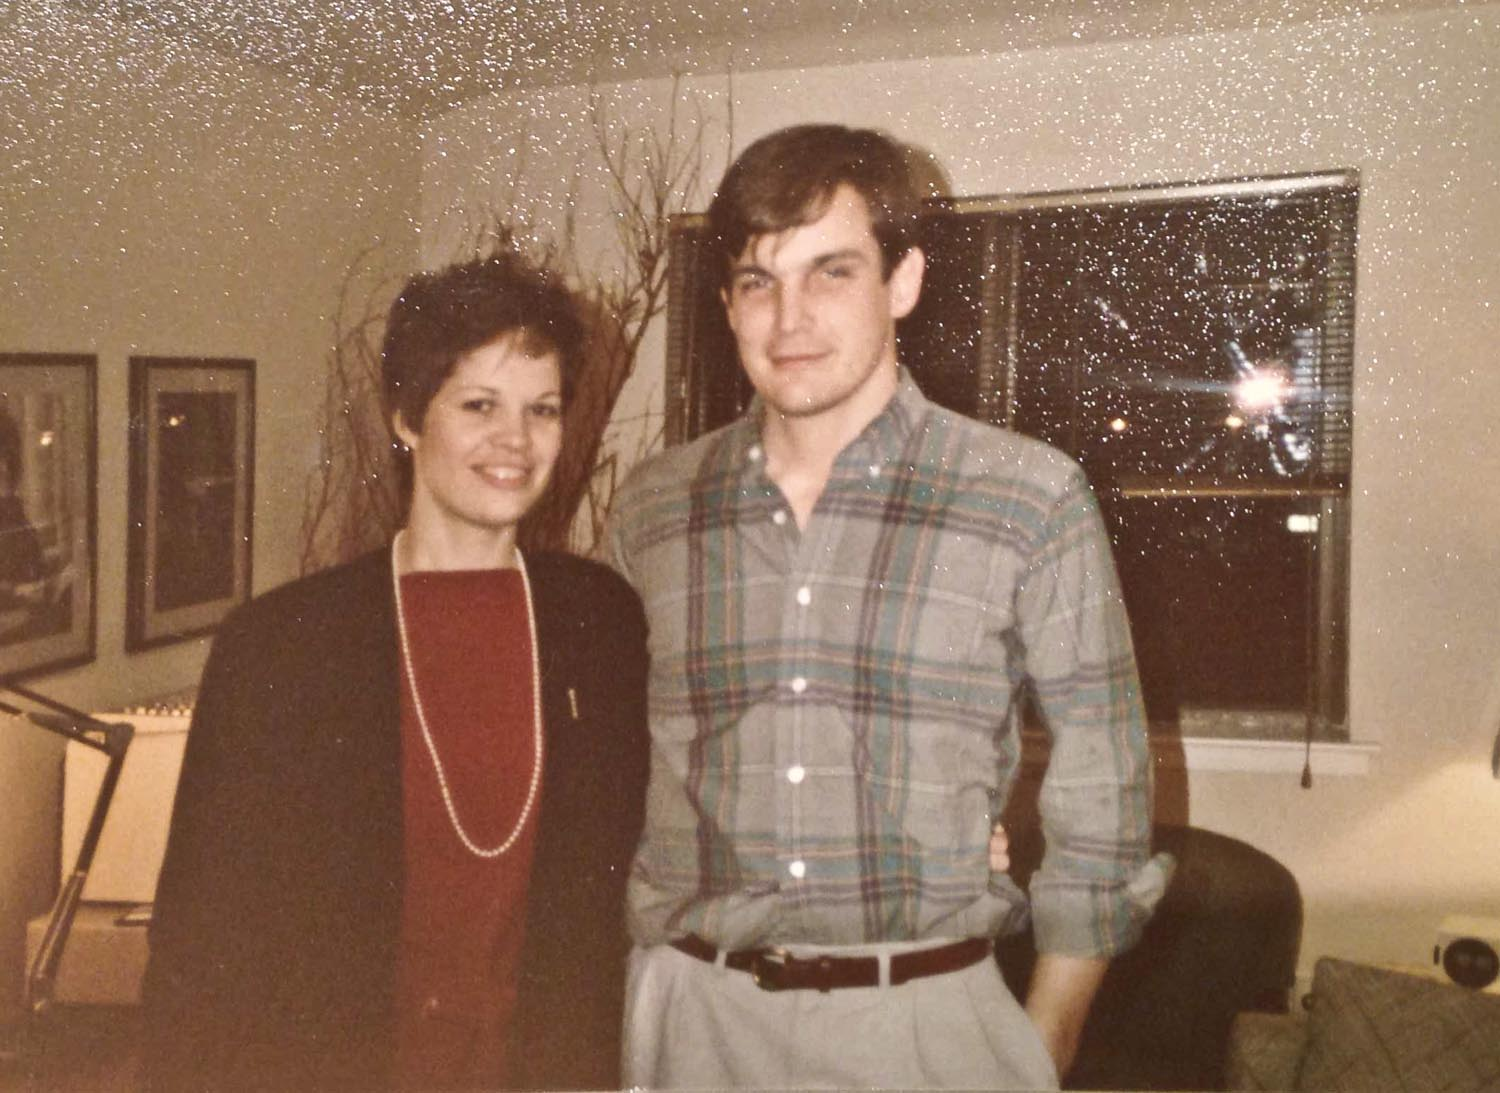 Camilla during her venture capital days in NY, 1985, with her cousin Jay.